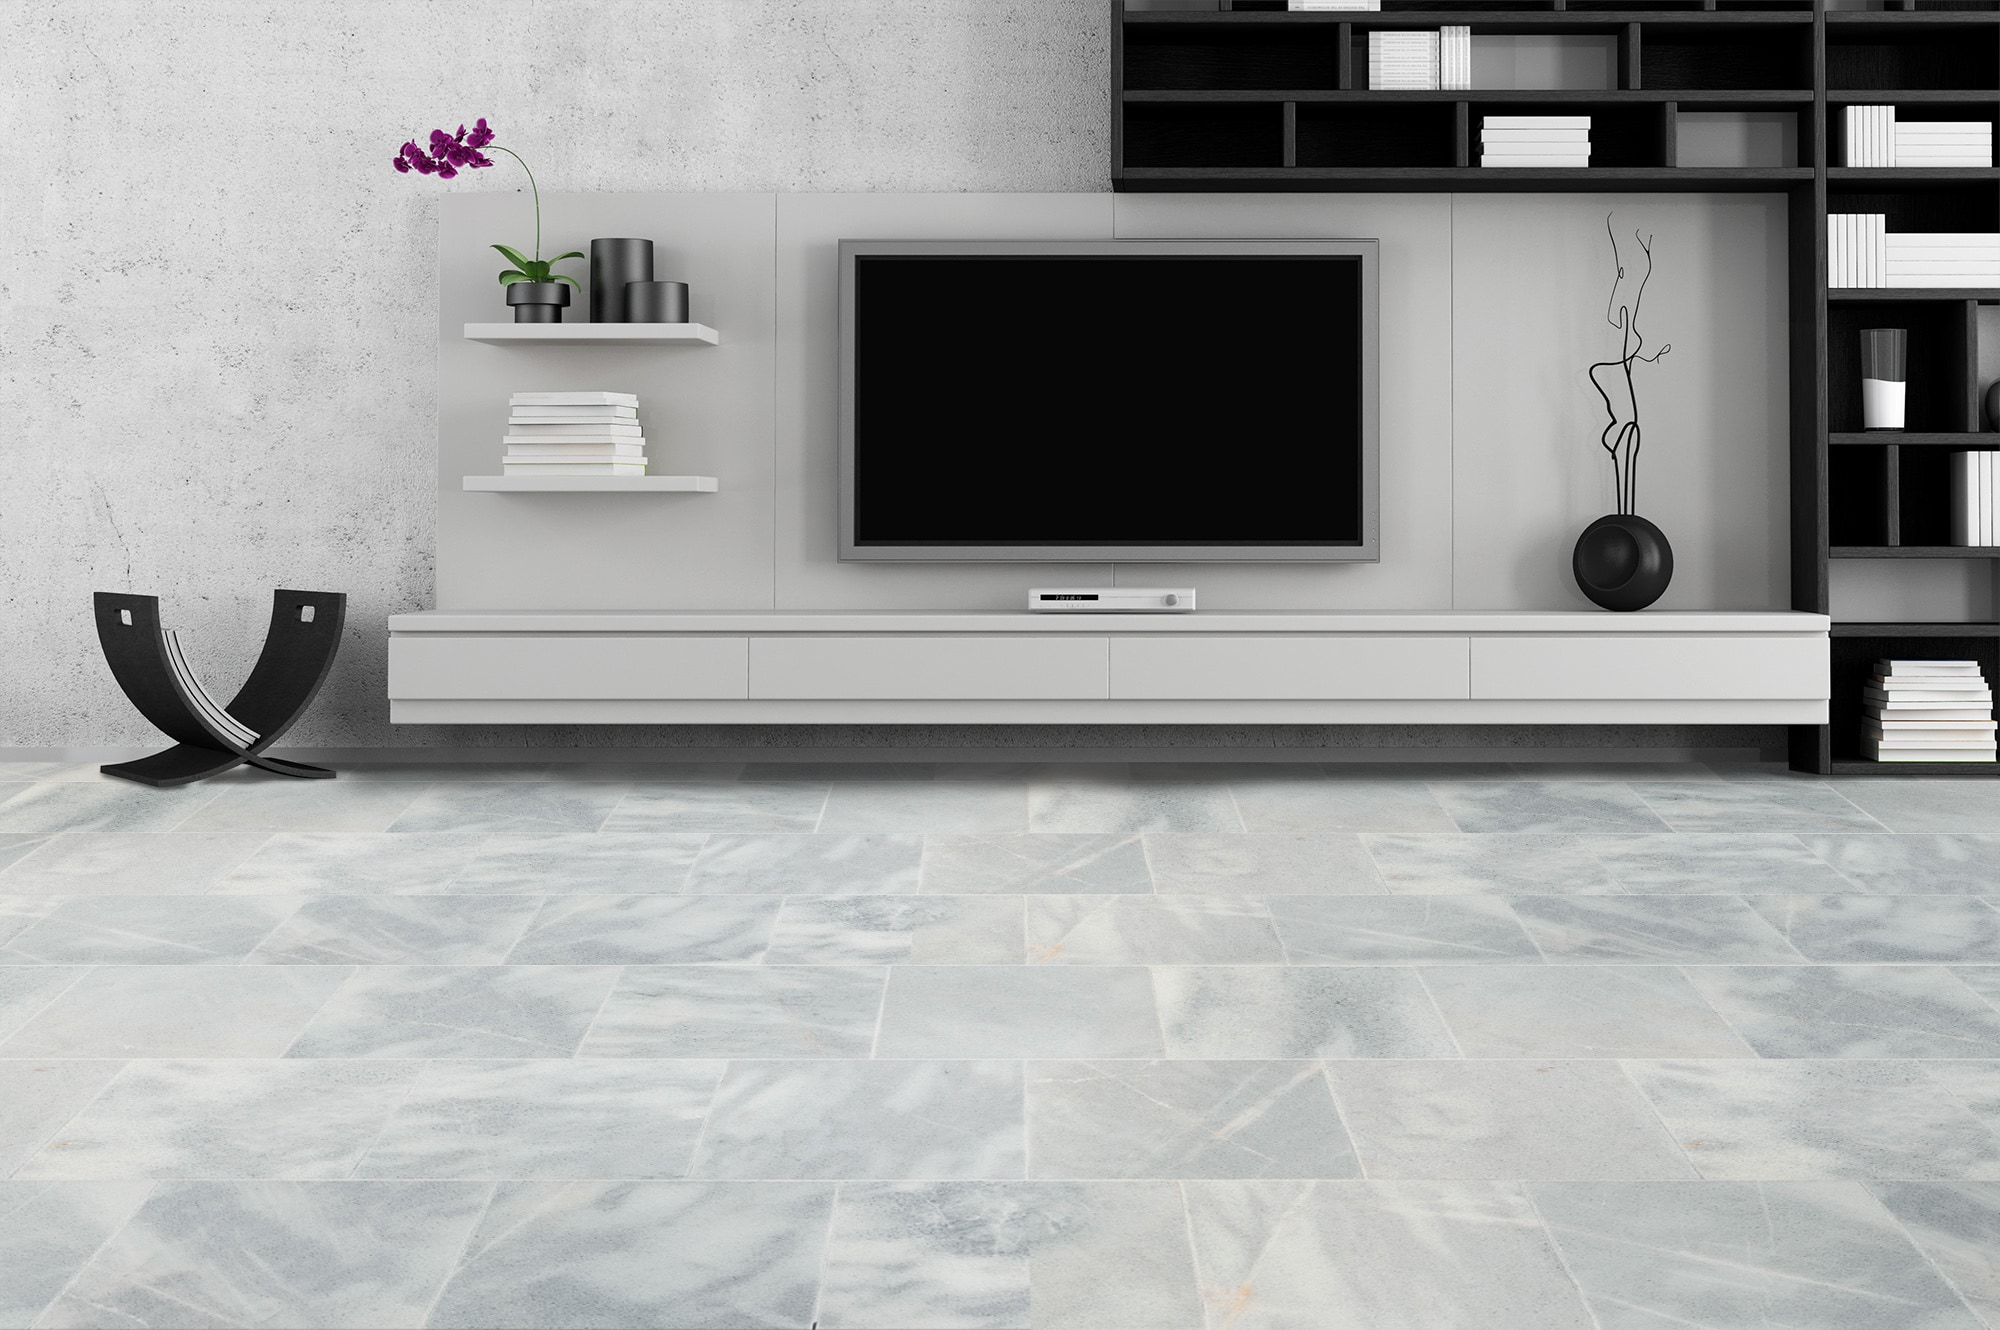 Free samples troya marble tile fume gray 12x12 polished dailygadgetfo Image collections